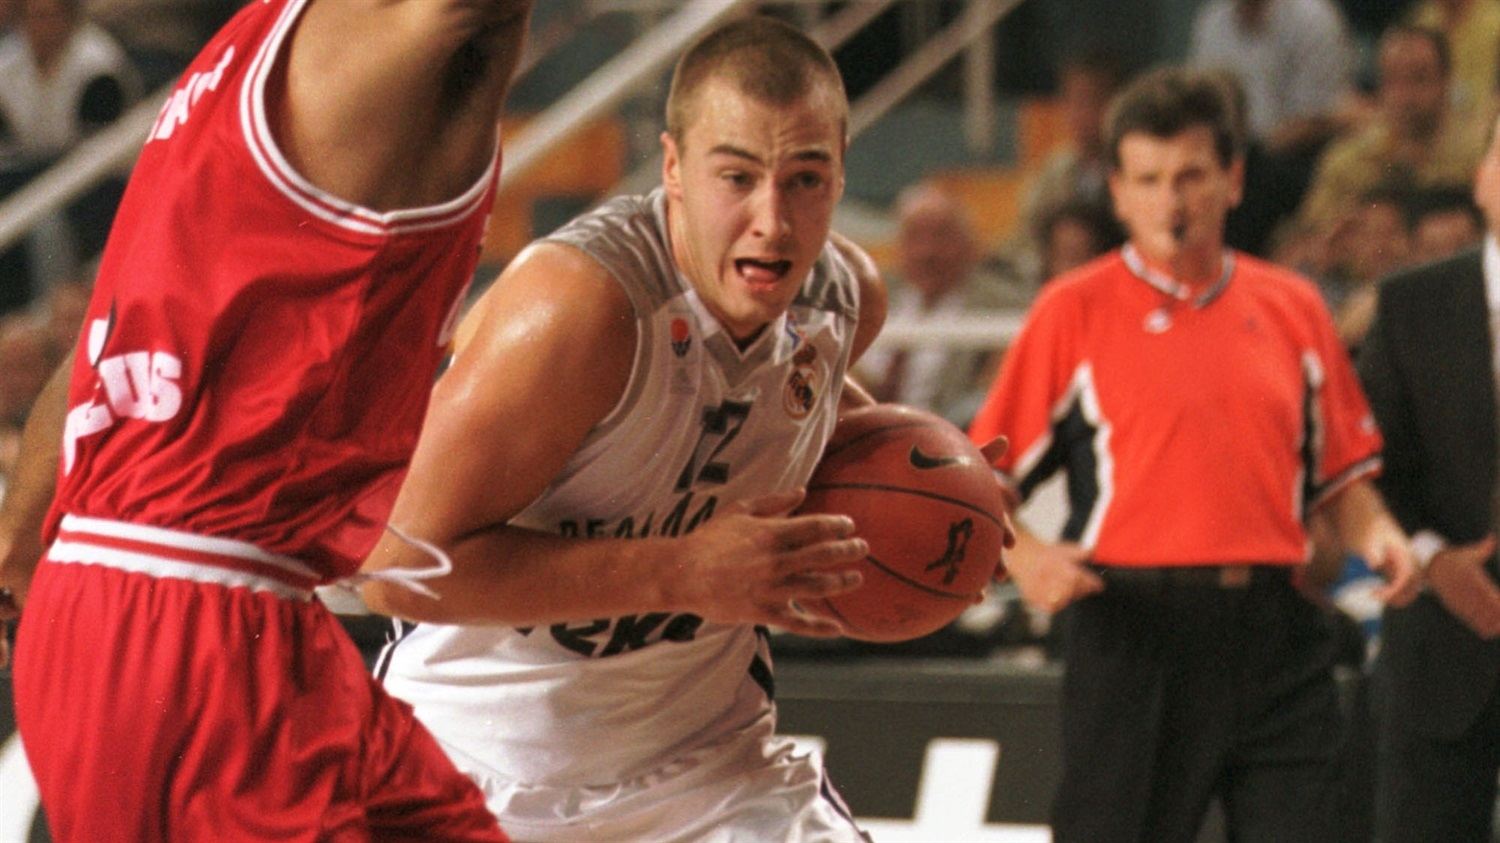 Marko Milic came off the bench for Real to contribute 10 points